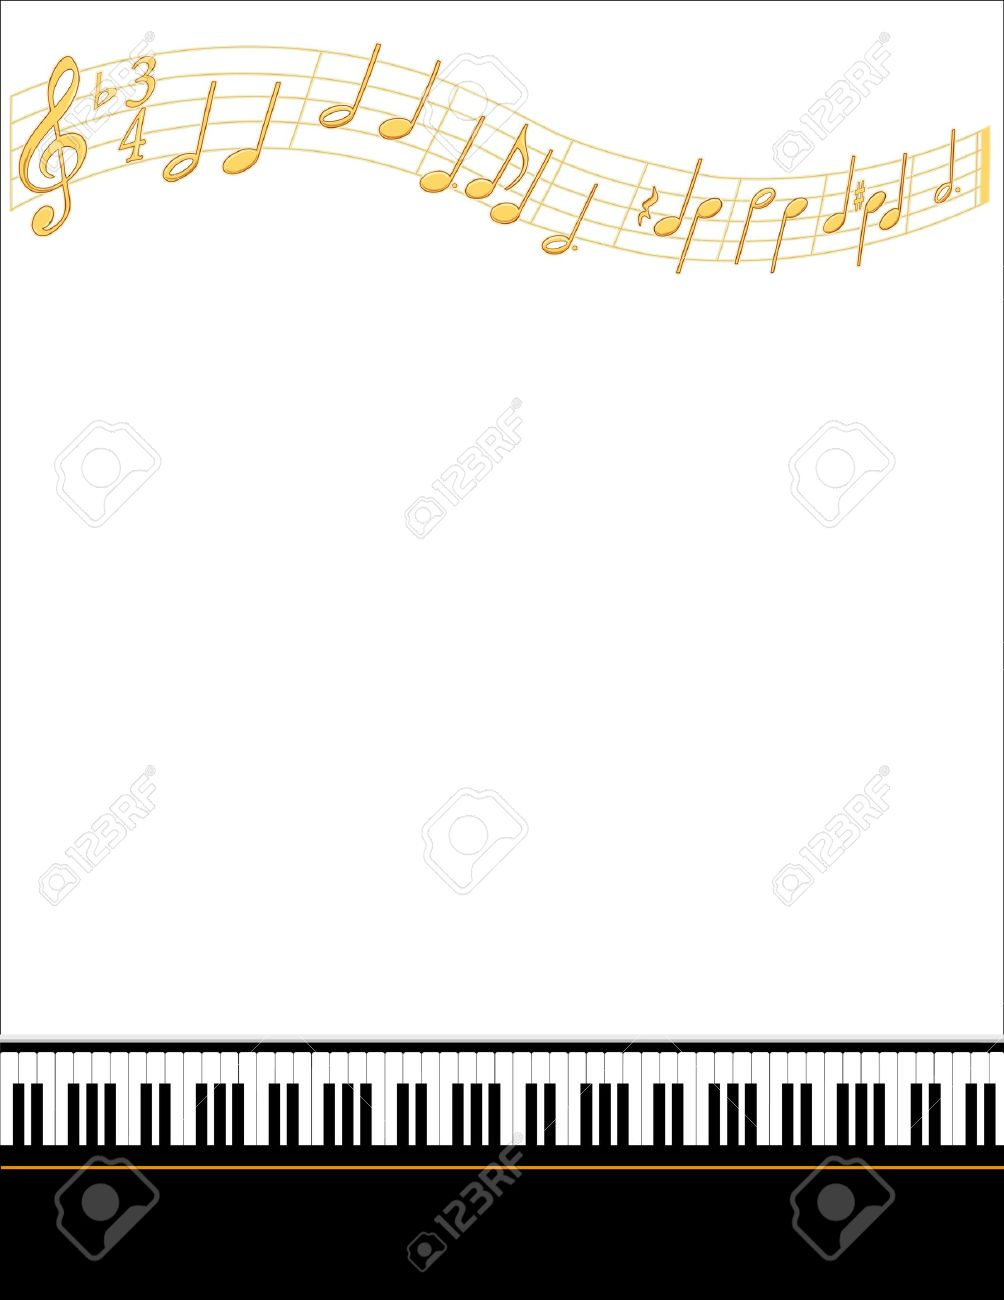 Music Entertainment Event Poster Frame, piano keyboard, gold notes, vertical. Stock Vector - 12136874